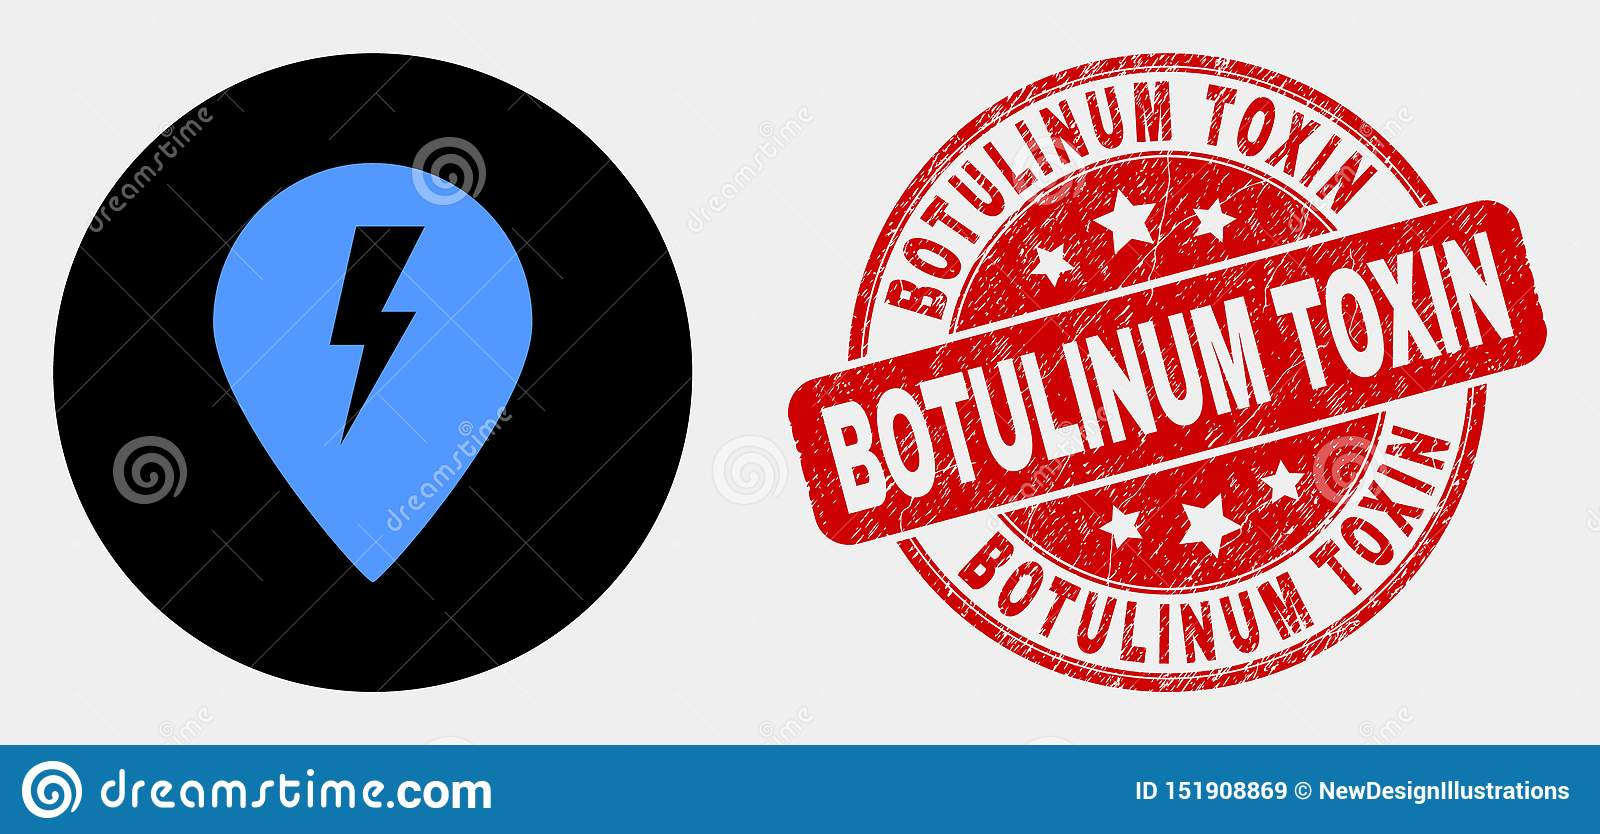 Vector Electric Map Marker Icon and Grunge Botulinum Toxin Stamp